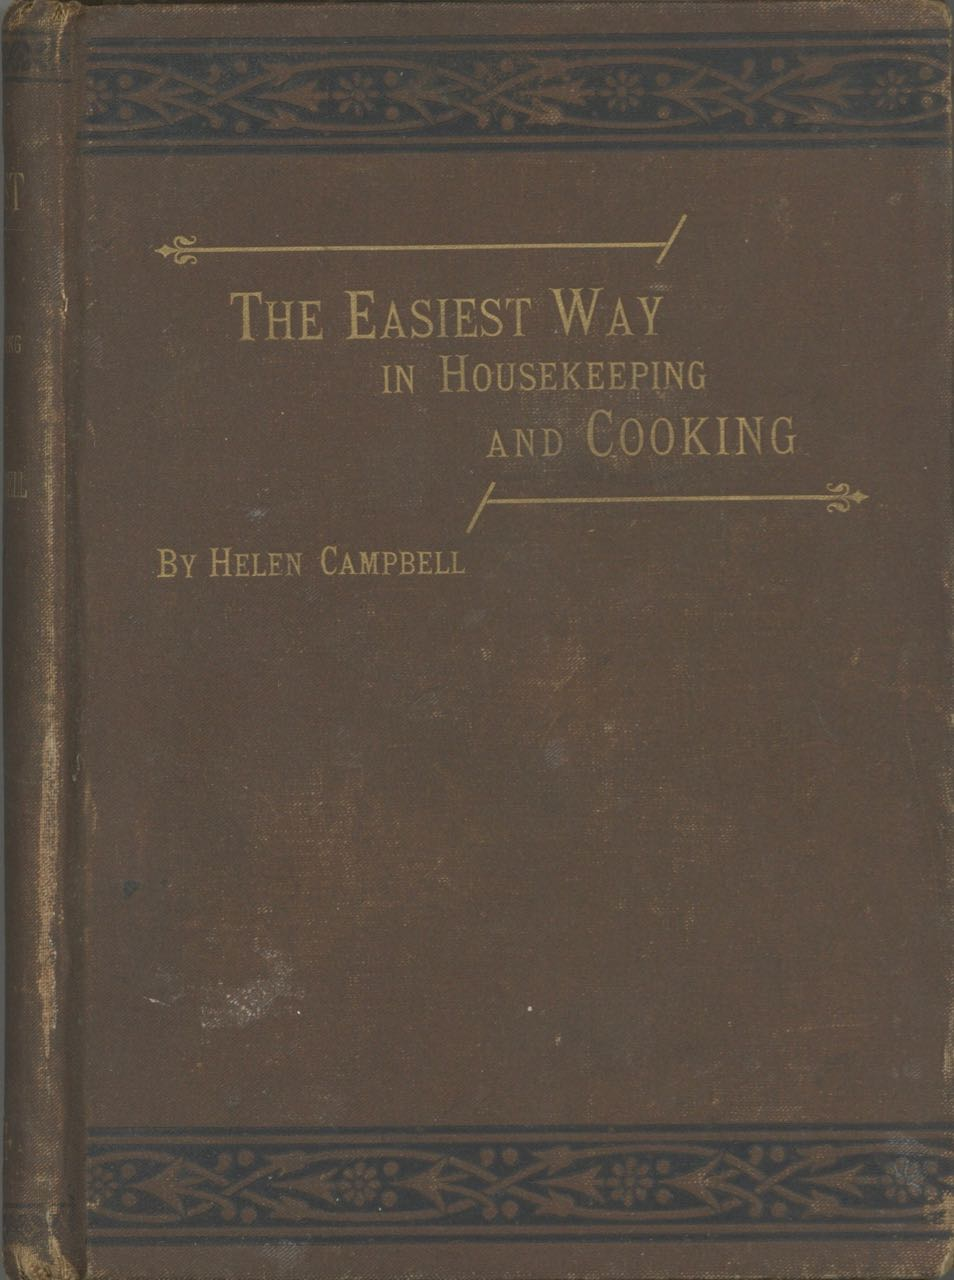 The Easiest Way in Housekeeping and Cooking. Adapted to Domestic Use or Study in Classes. Helen Campbell.